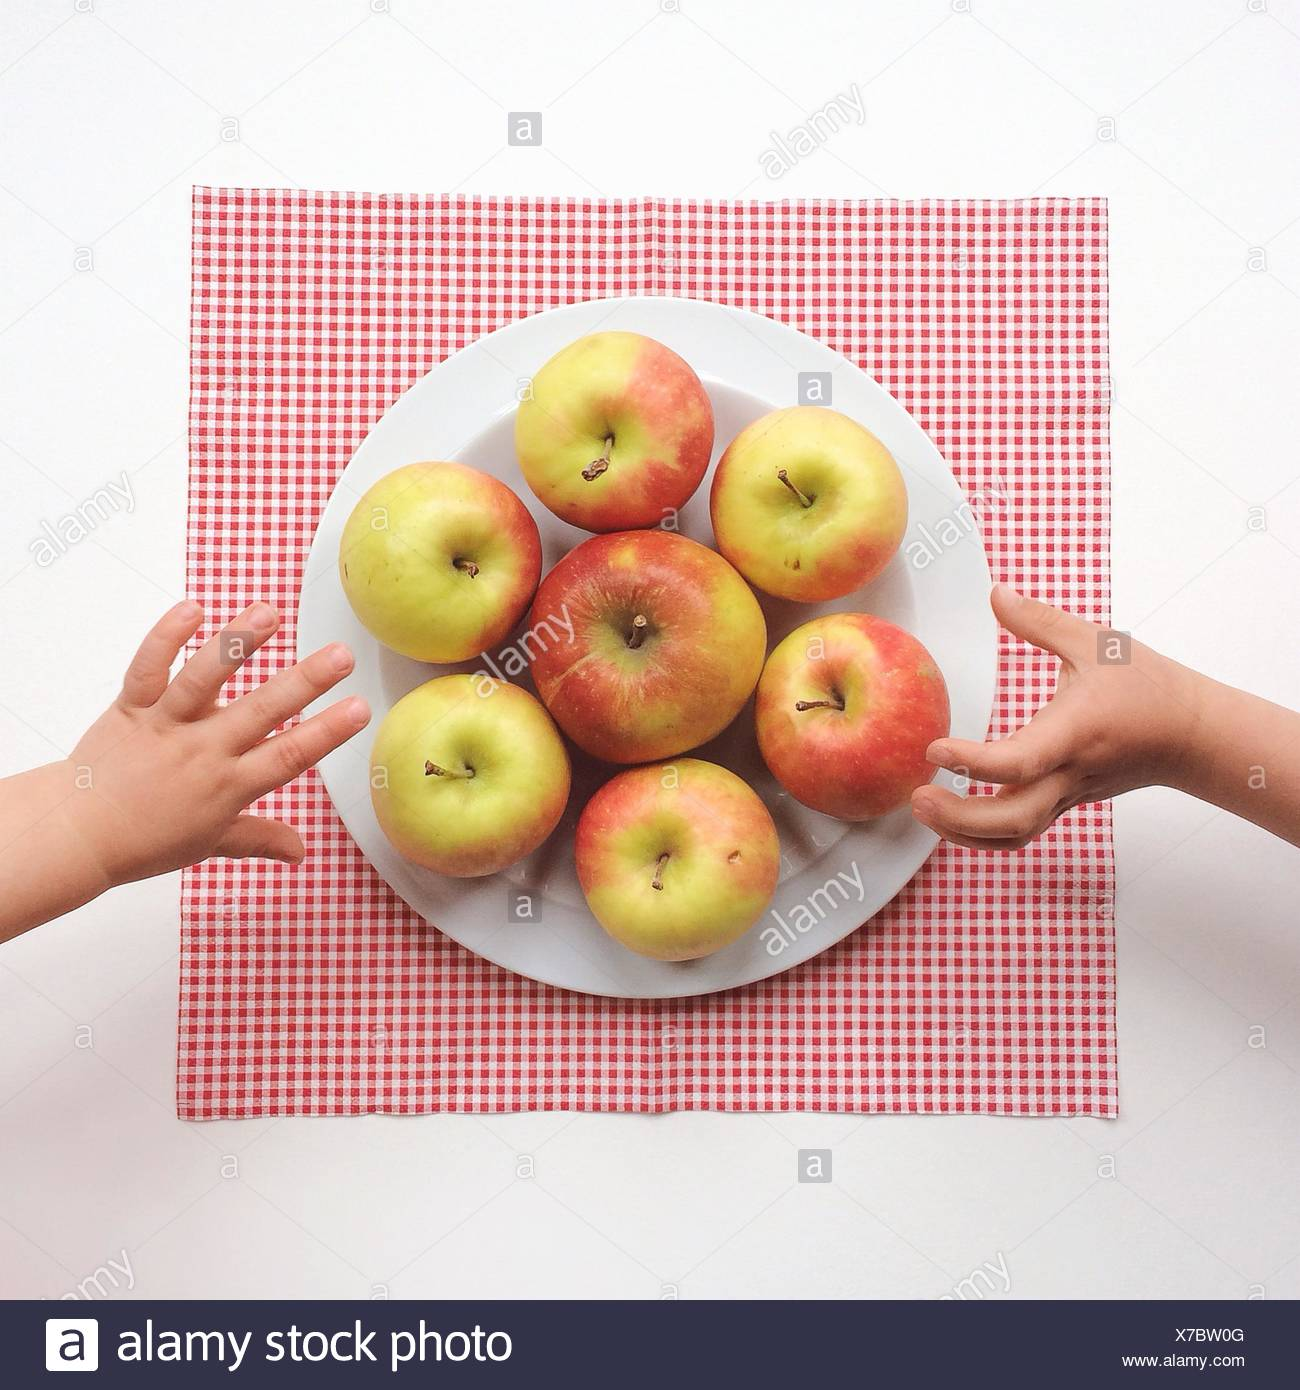 Two boys reaching for apples - Stock Image